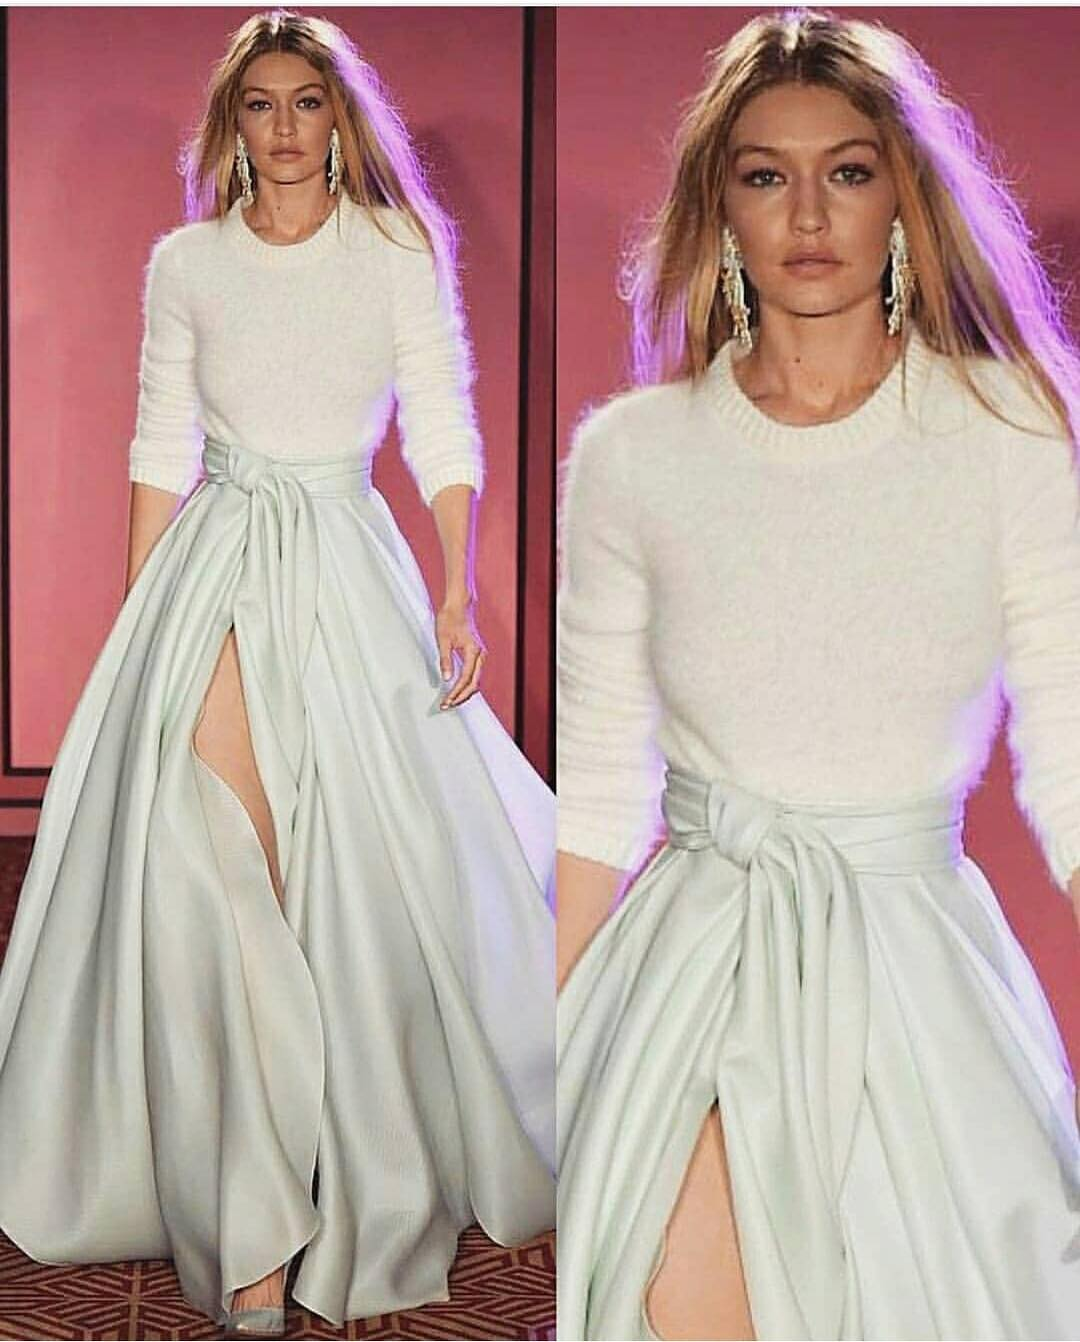 How To Style Mohair Sweater In White And Maxi Skirt This Fall 2020